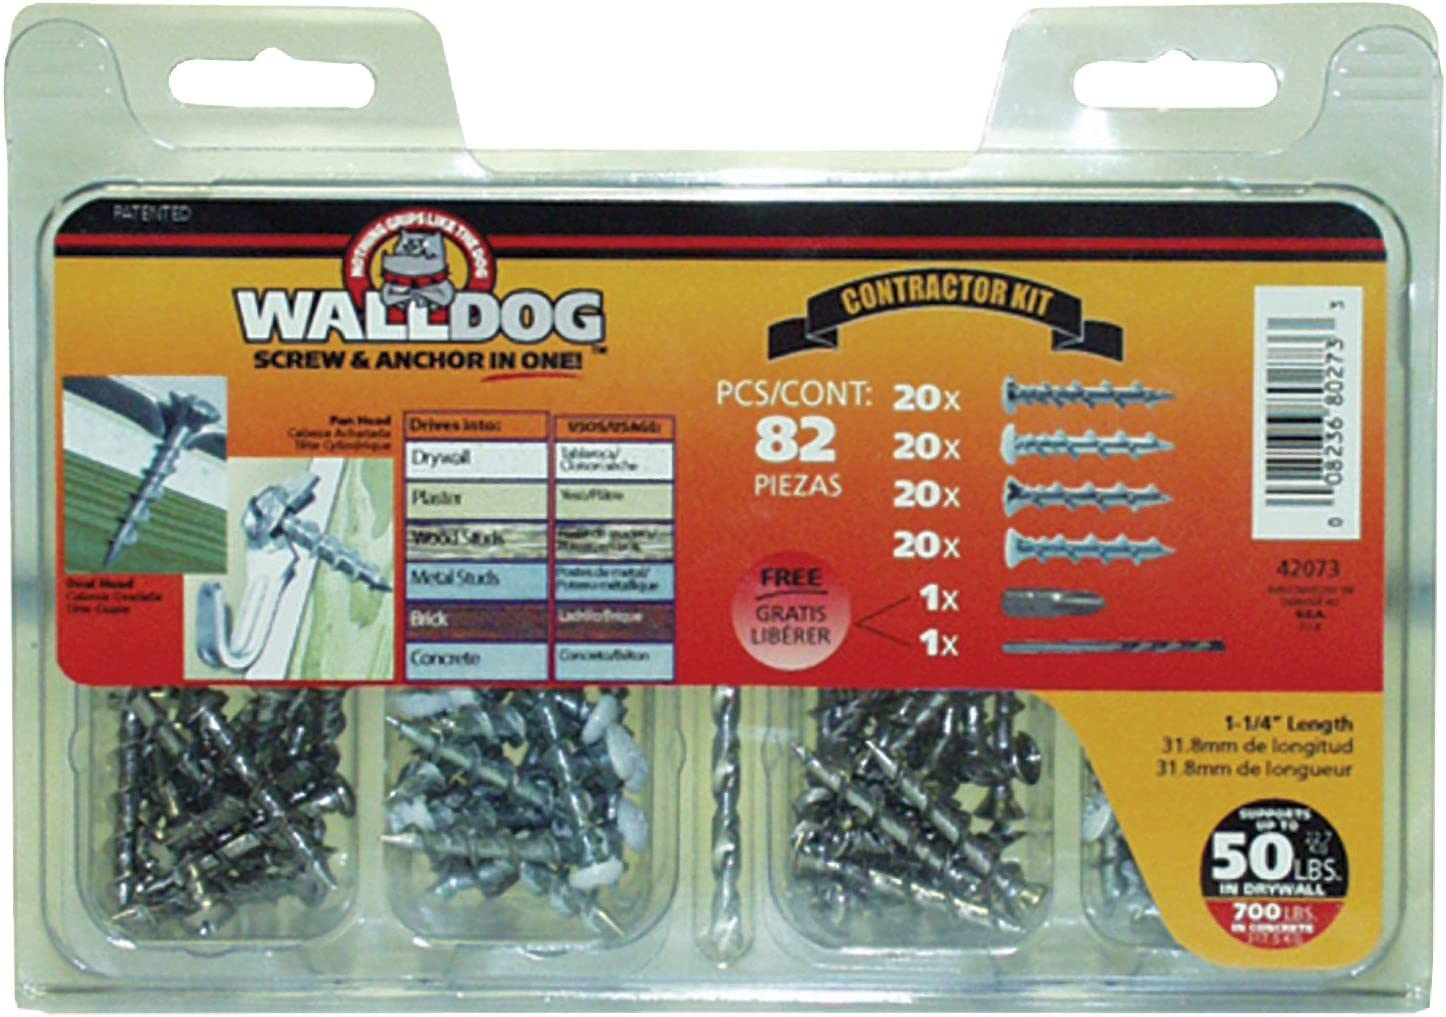 Hillman Group 42073 WALLDOG Screw & Anchor in One Contractor Kit, Pack of 1, 82 Pieces 71yy2frRYDL